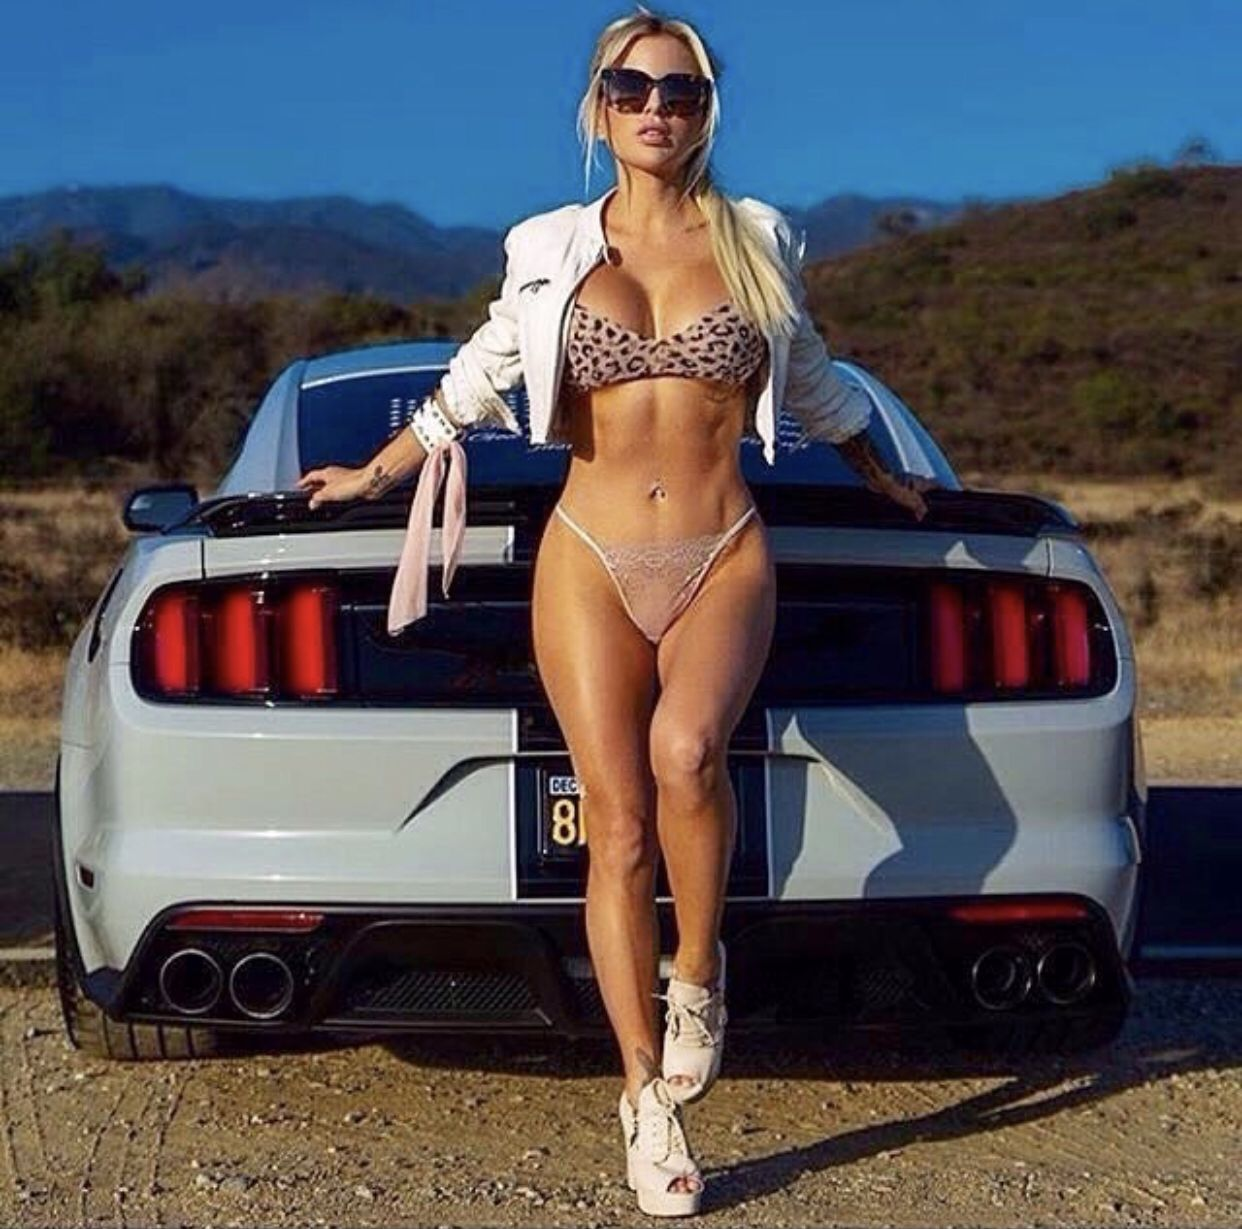 Pin On Hot Cars With Hot Girls